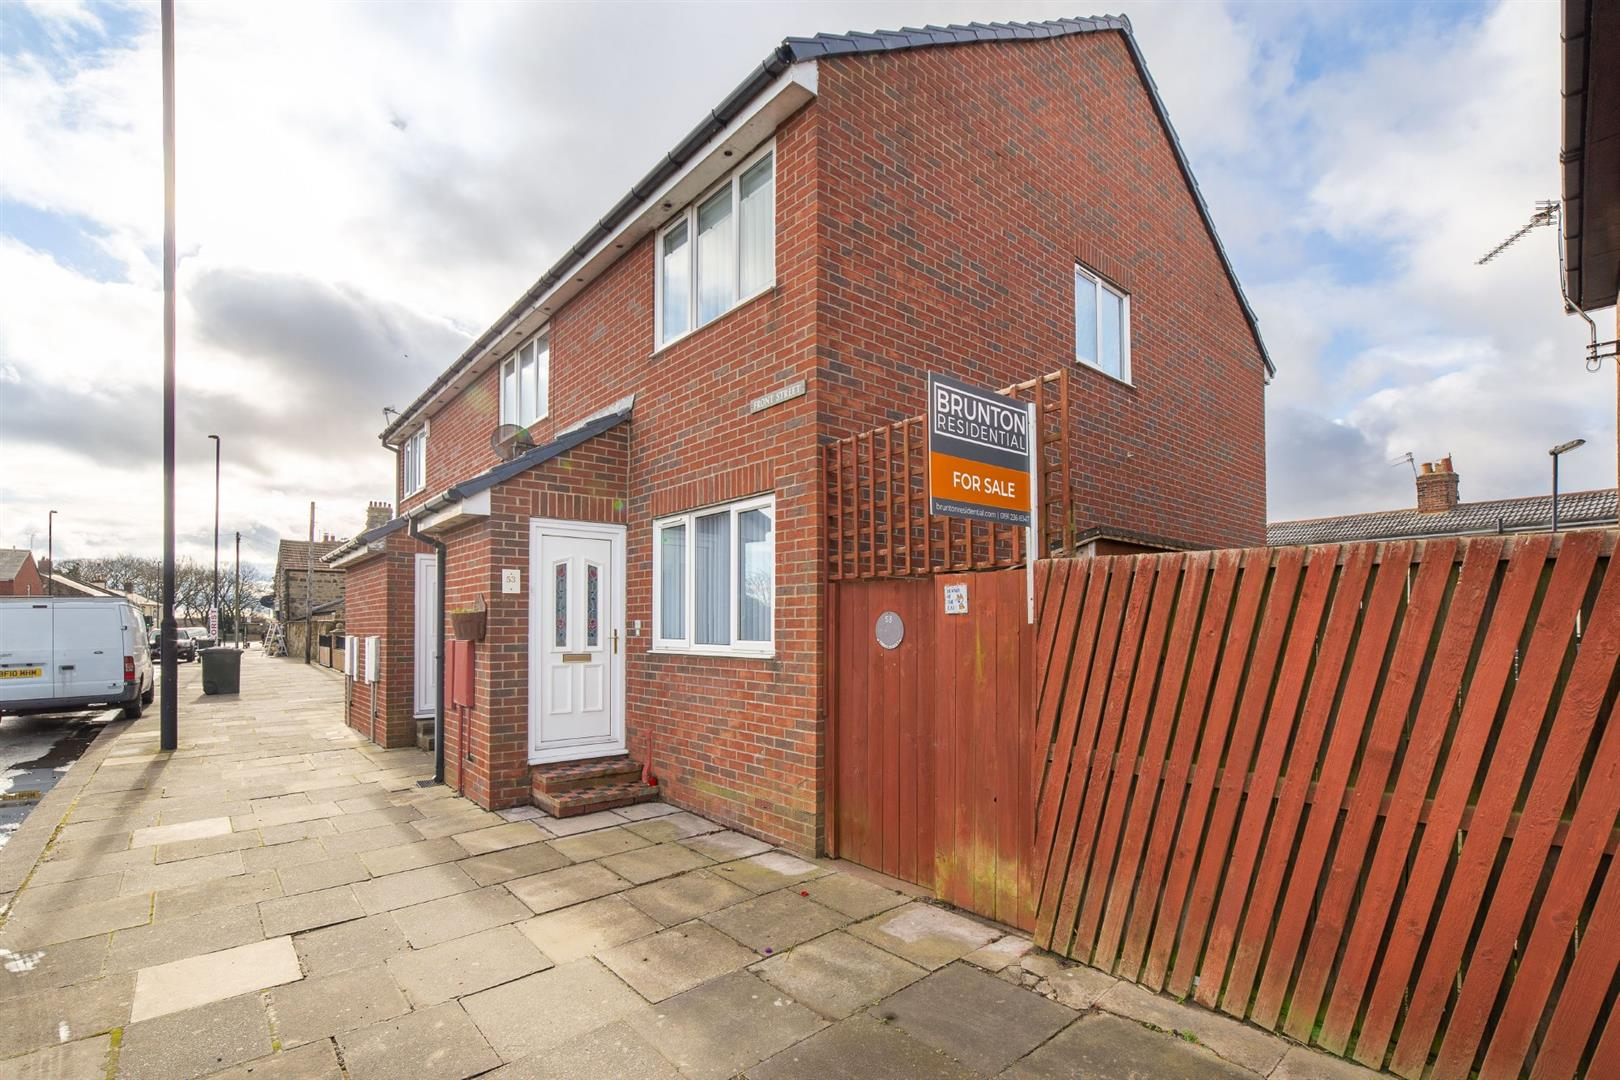 2 bed end of terrace house for sale in North Tyneside, NE13 6EP, NE13